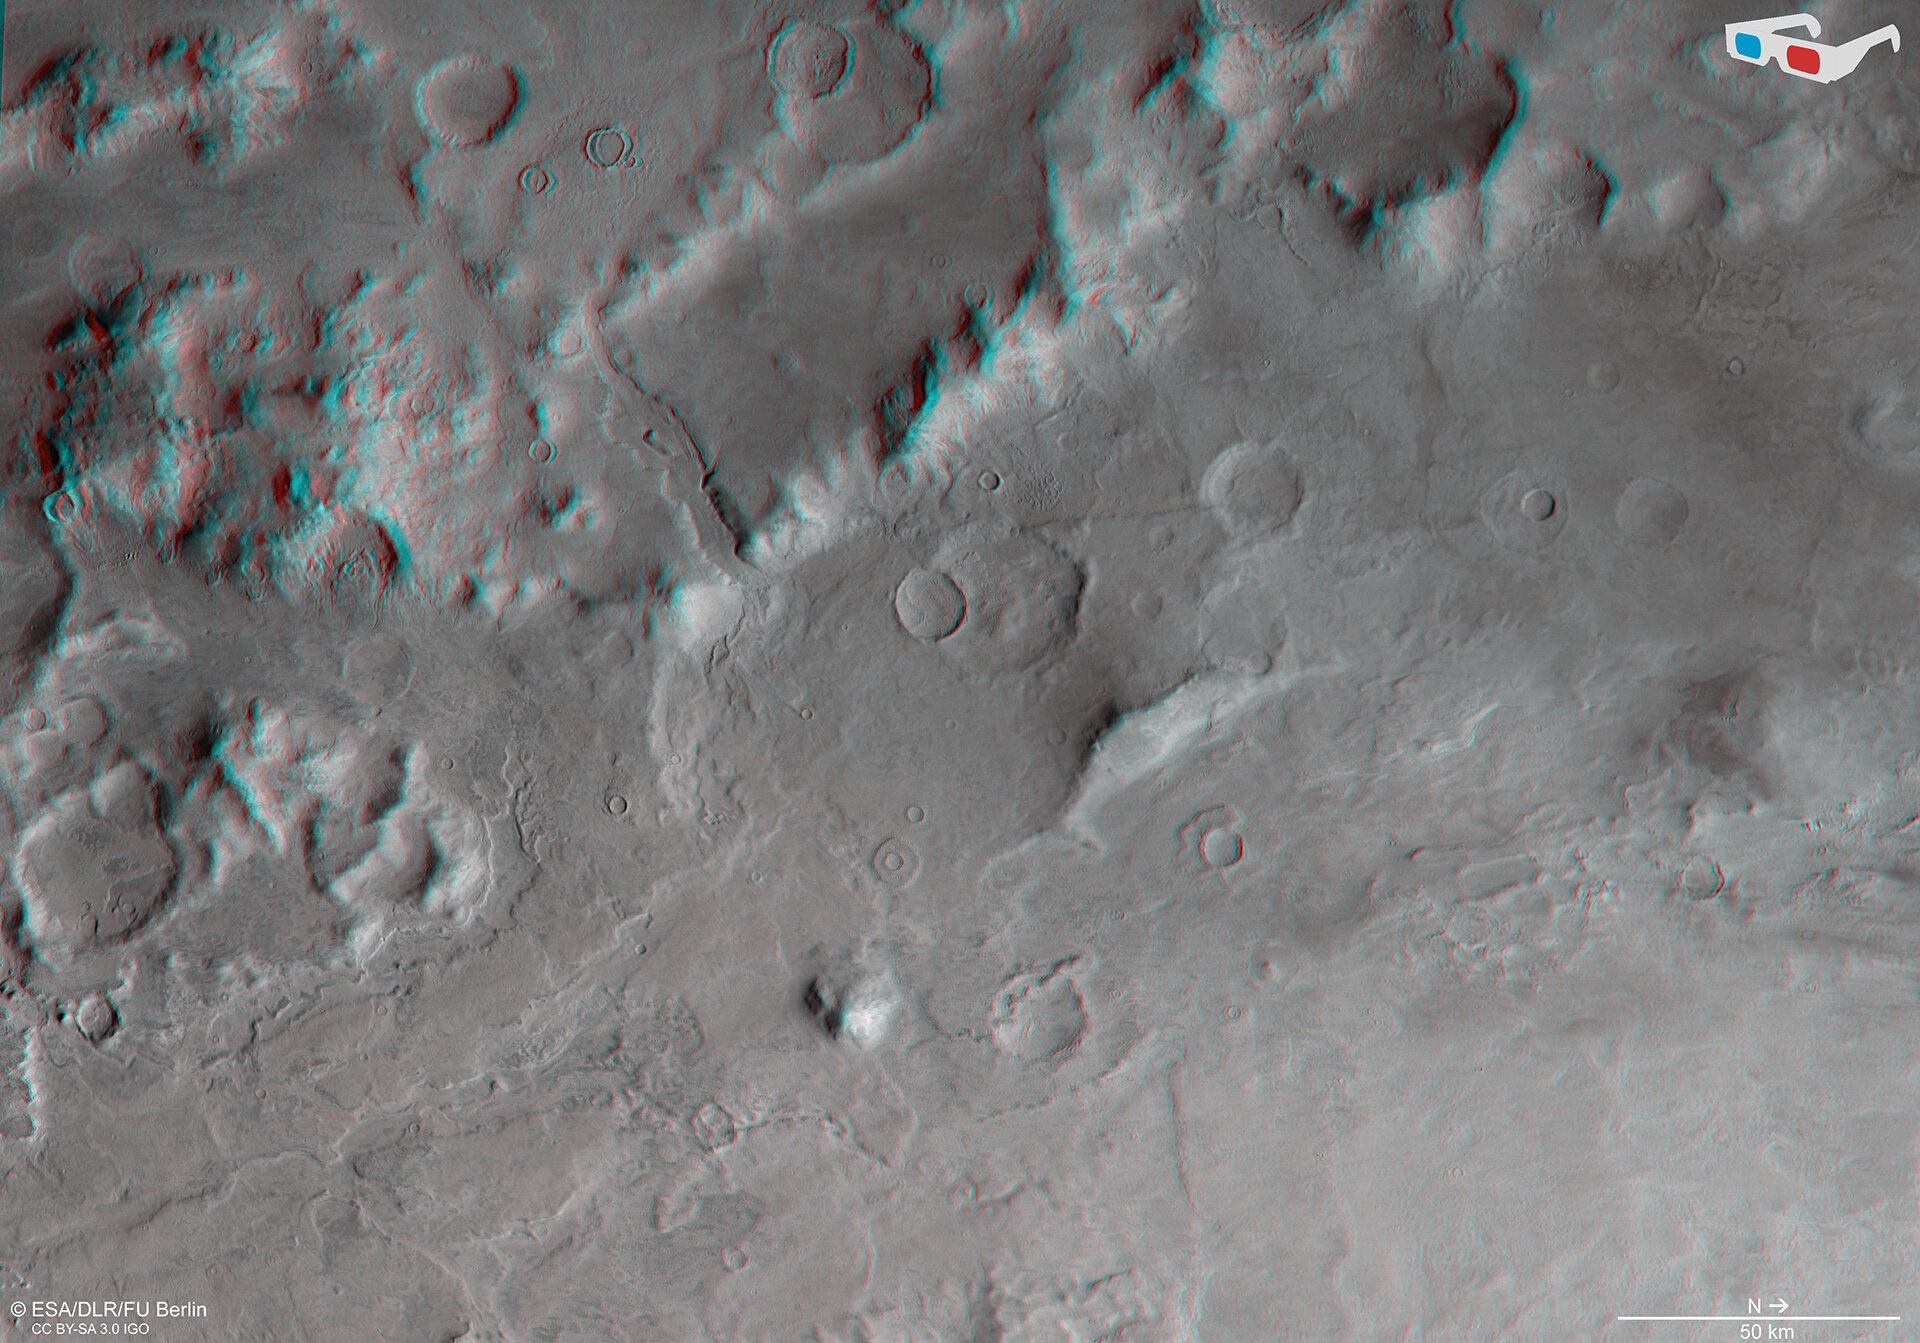 Hellas Basin rim in 3D